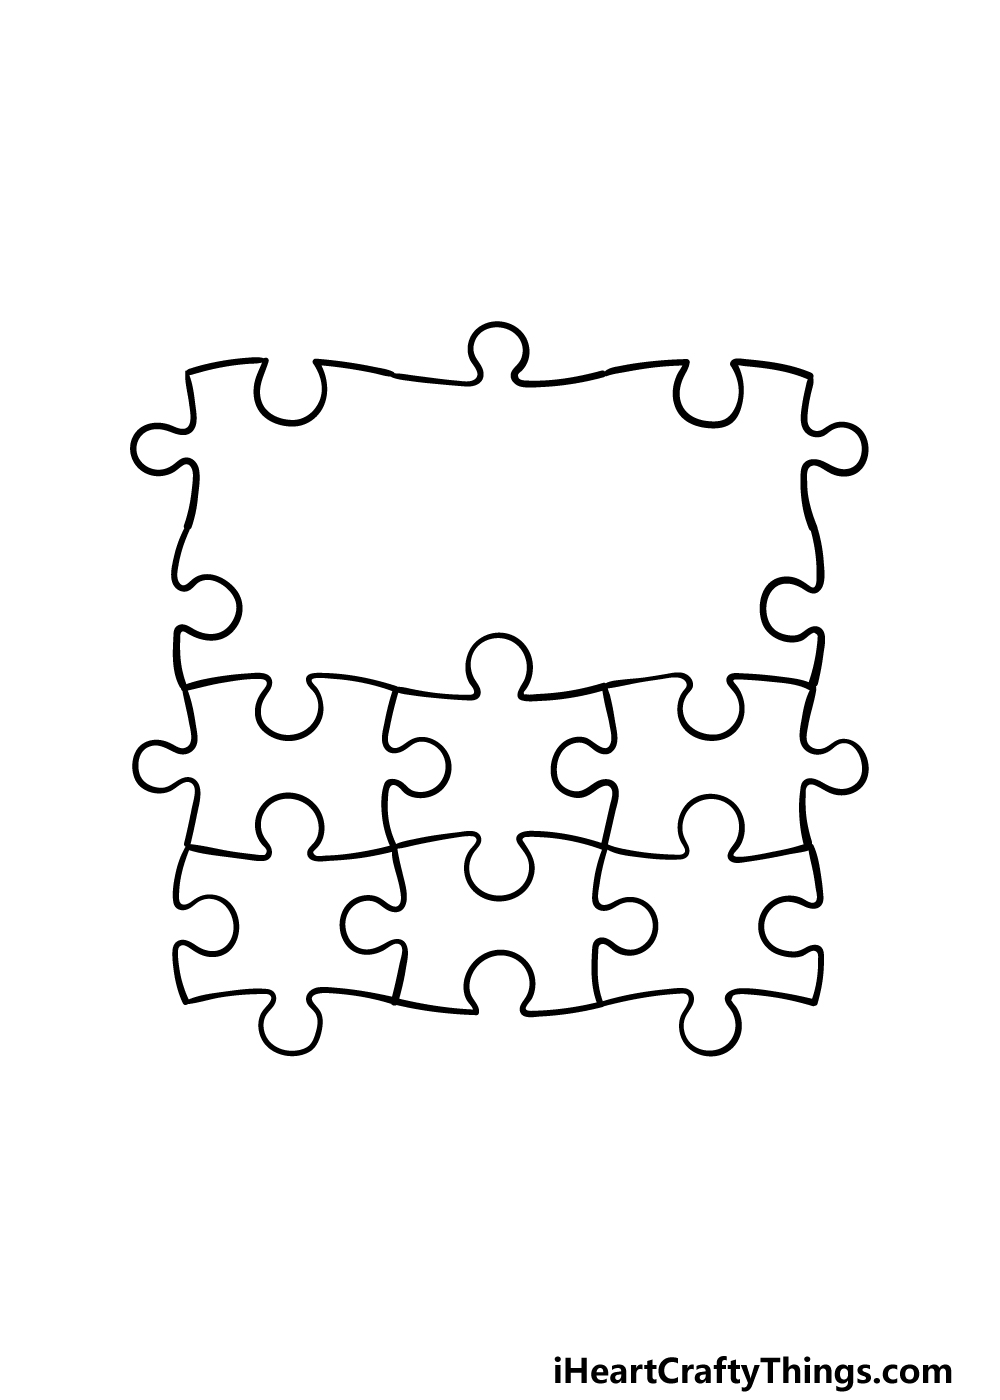 how to draw Puzzle Pieces step 4